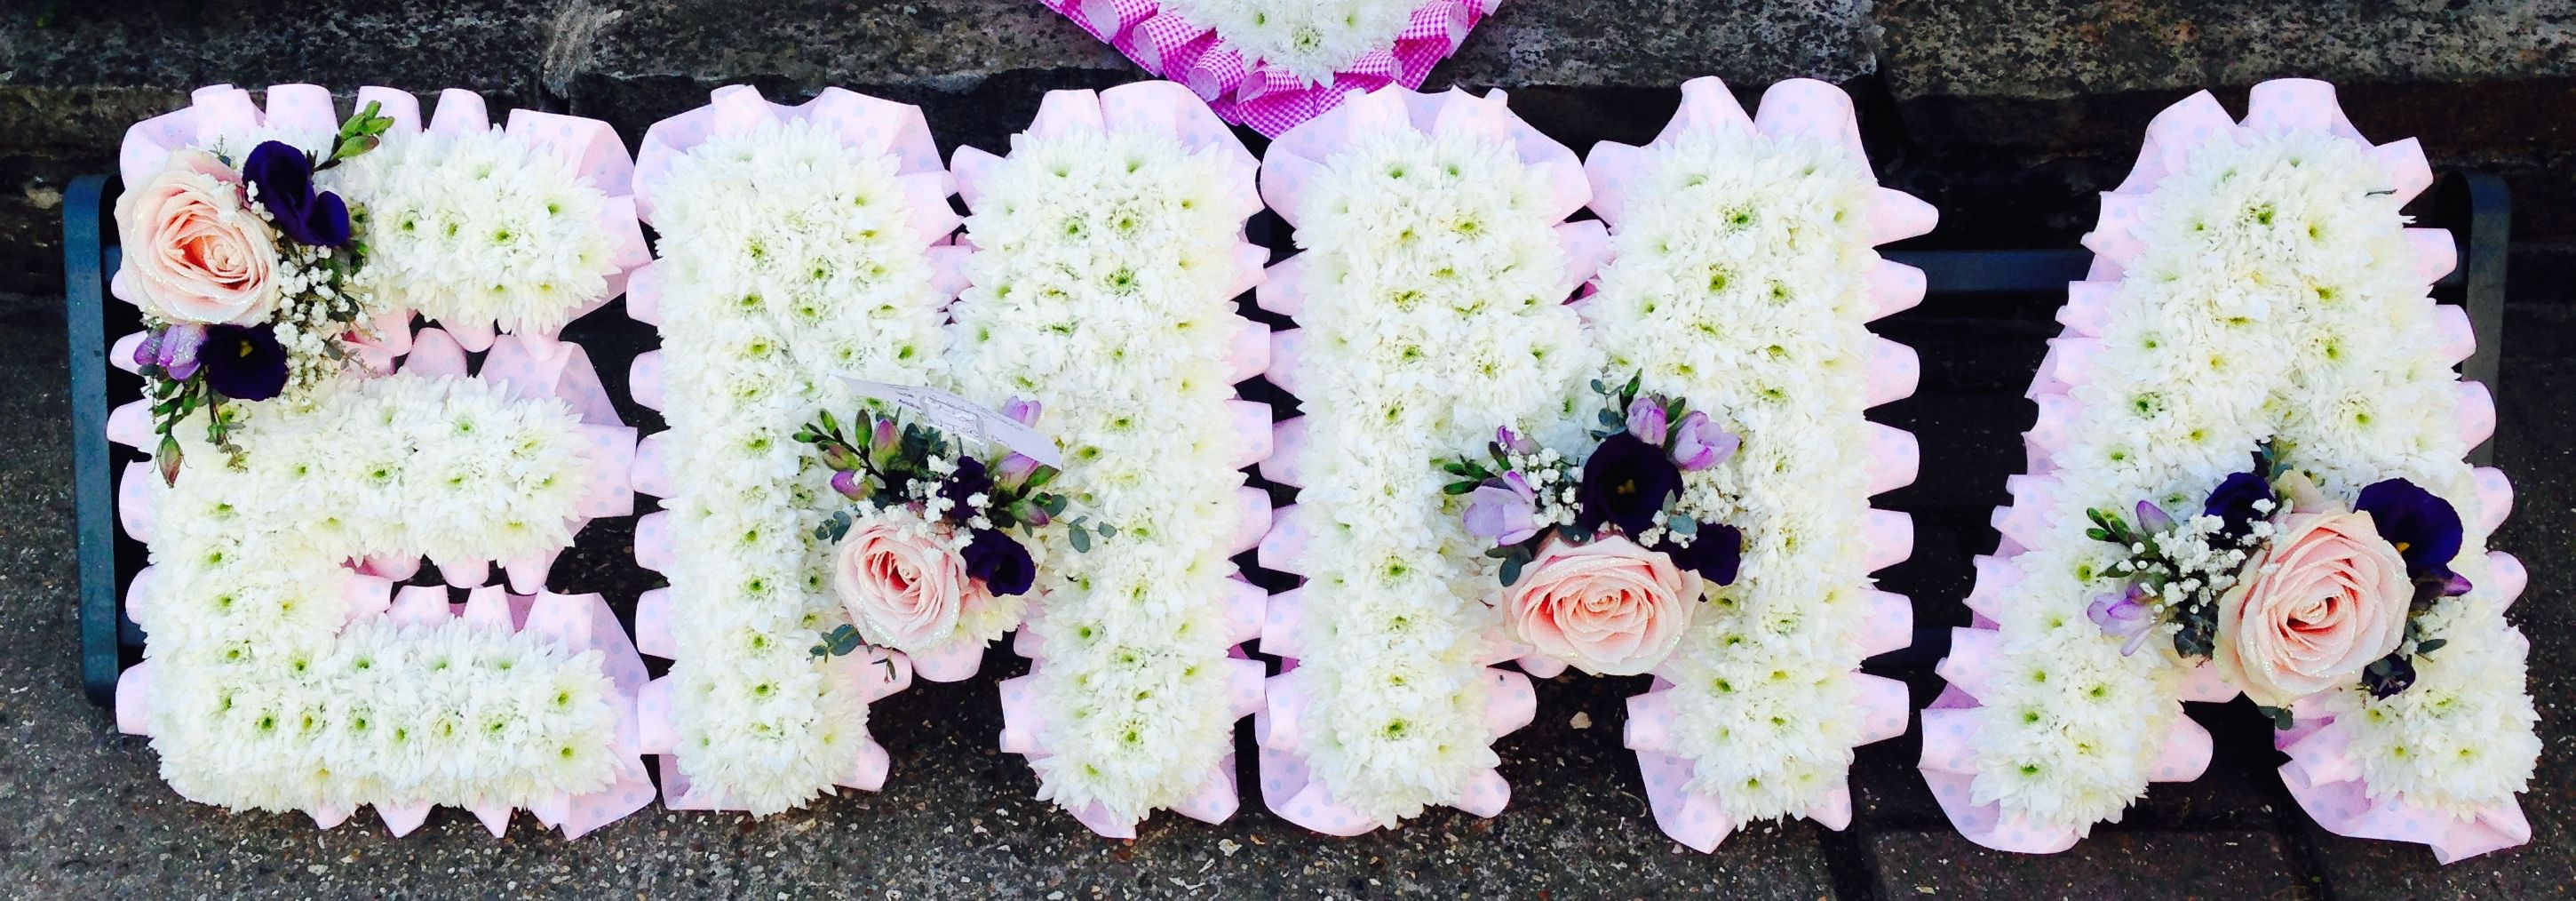 Funeral Flowers Emma Funeral Flower Letter Tribute Pretty Pink And